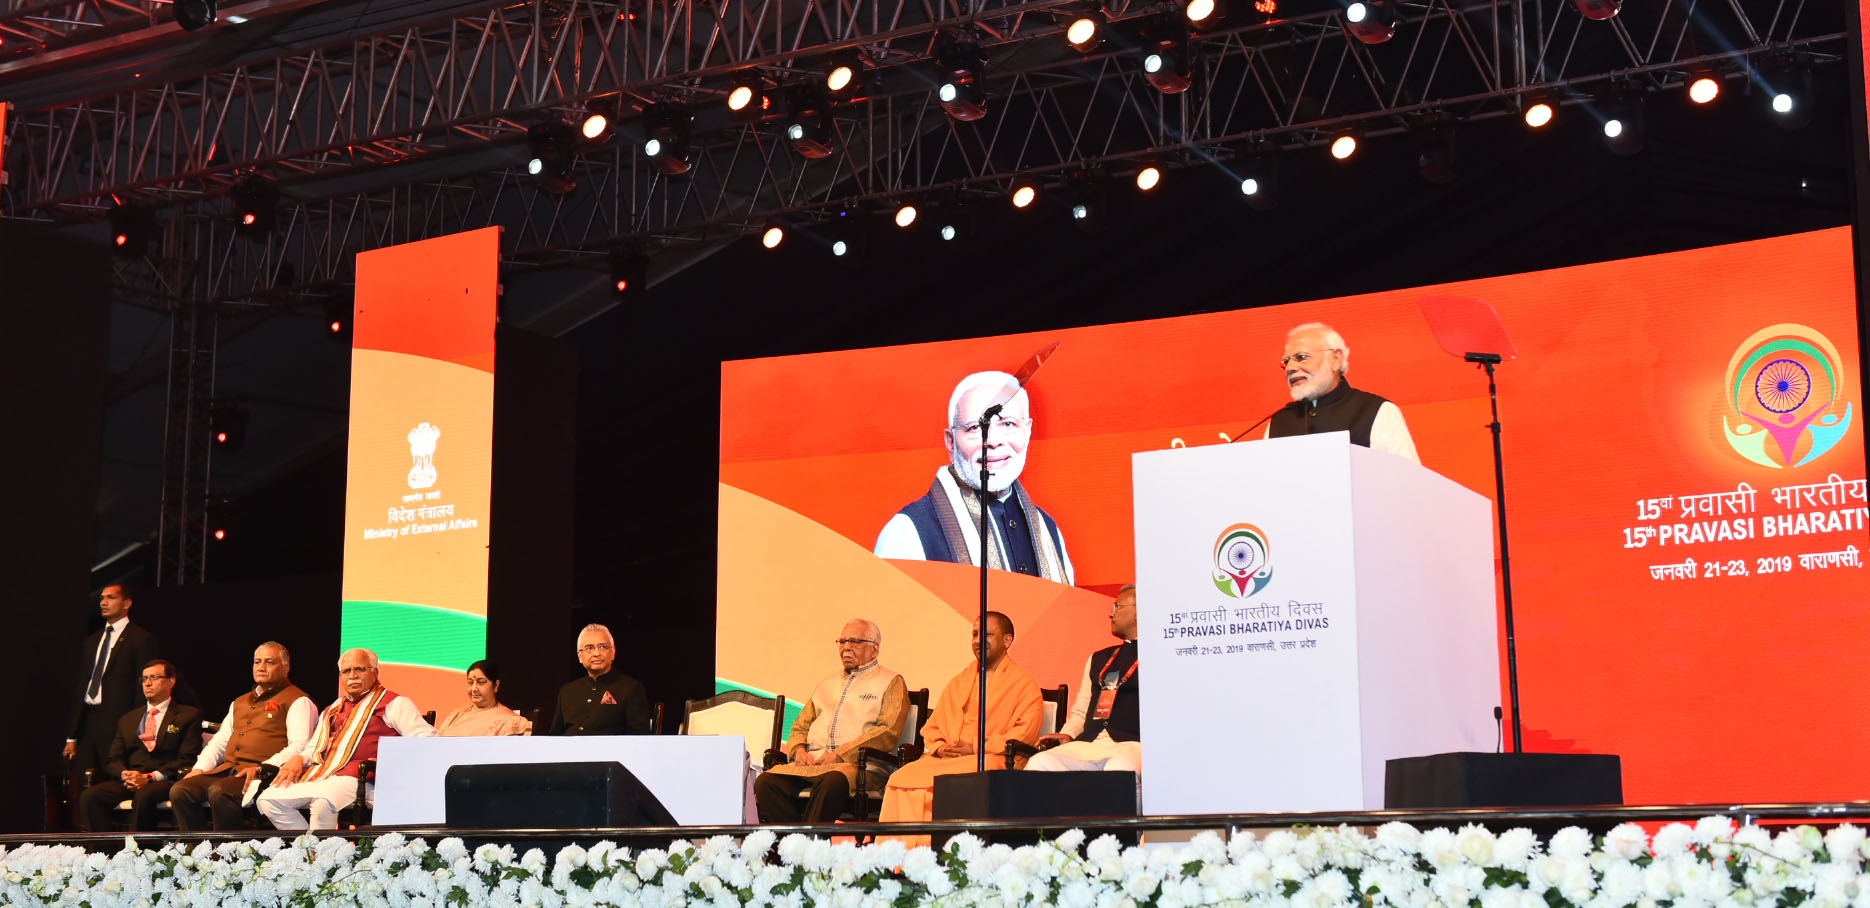 Prime Minister Narendra Modi addressing at the inauguration of the 15th Pravasi Bharatiya Divas convention 2019, in Varanasi, Uttar Pradesh on 22 January 2019. Photo courtesy: PMO